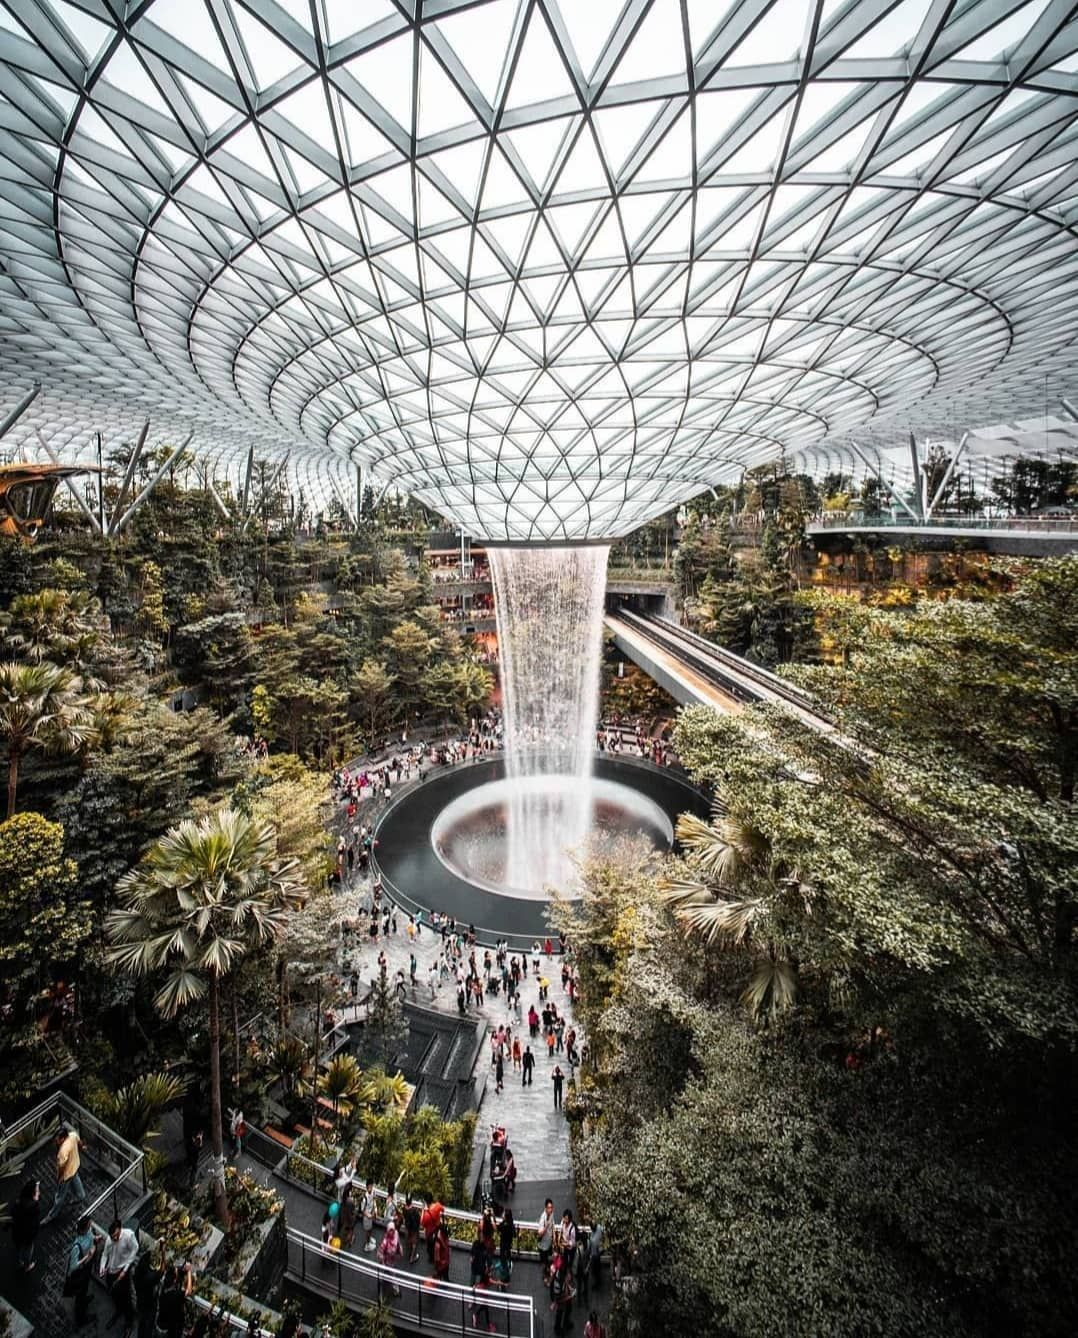 New The 10 Best Travel With Pictures Jewel Changi Airport Singapore The Best Airport Isn T I Changi Airport Singapore Travel Inspiration Travel Pictures